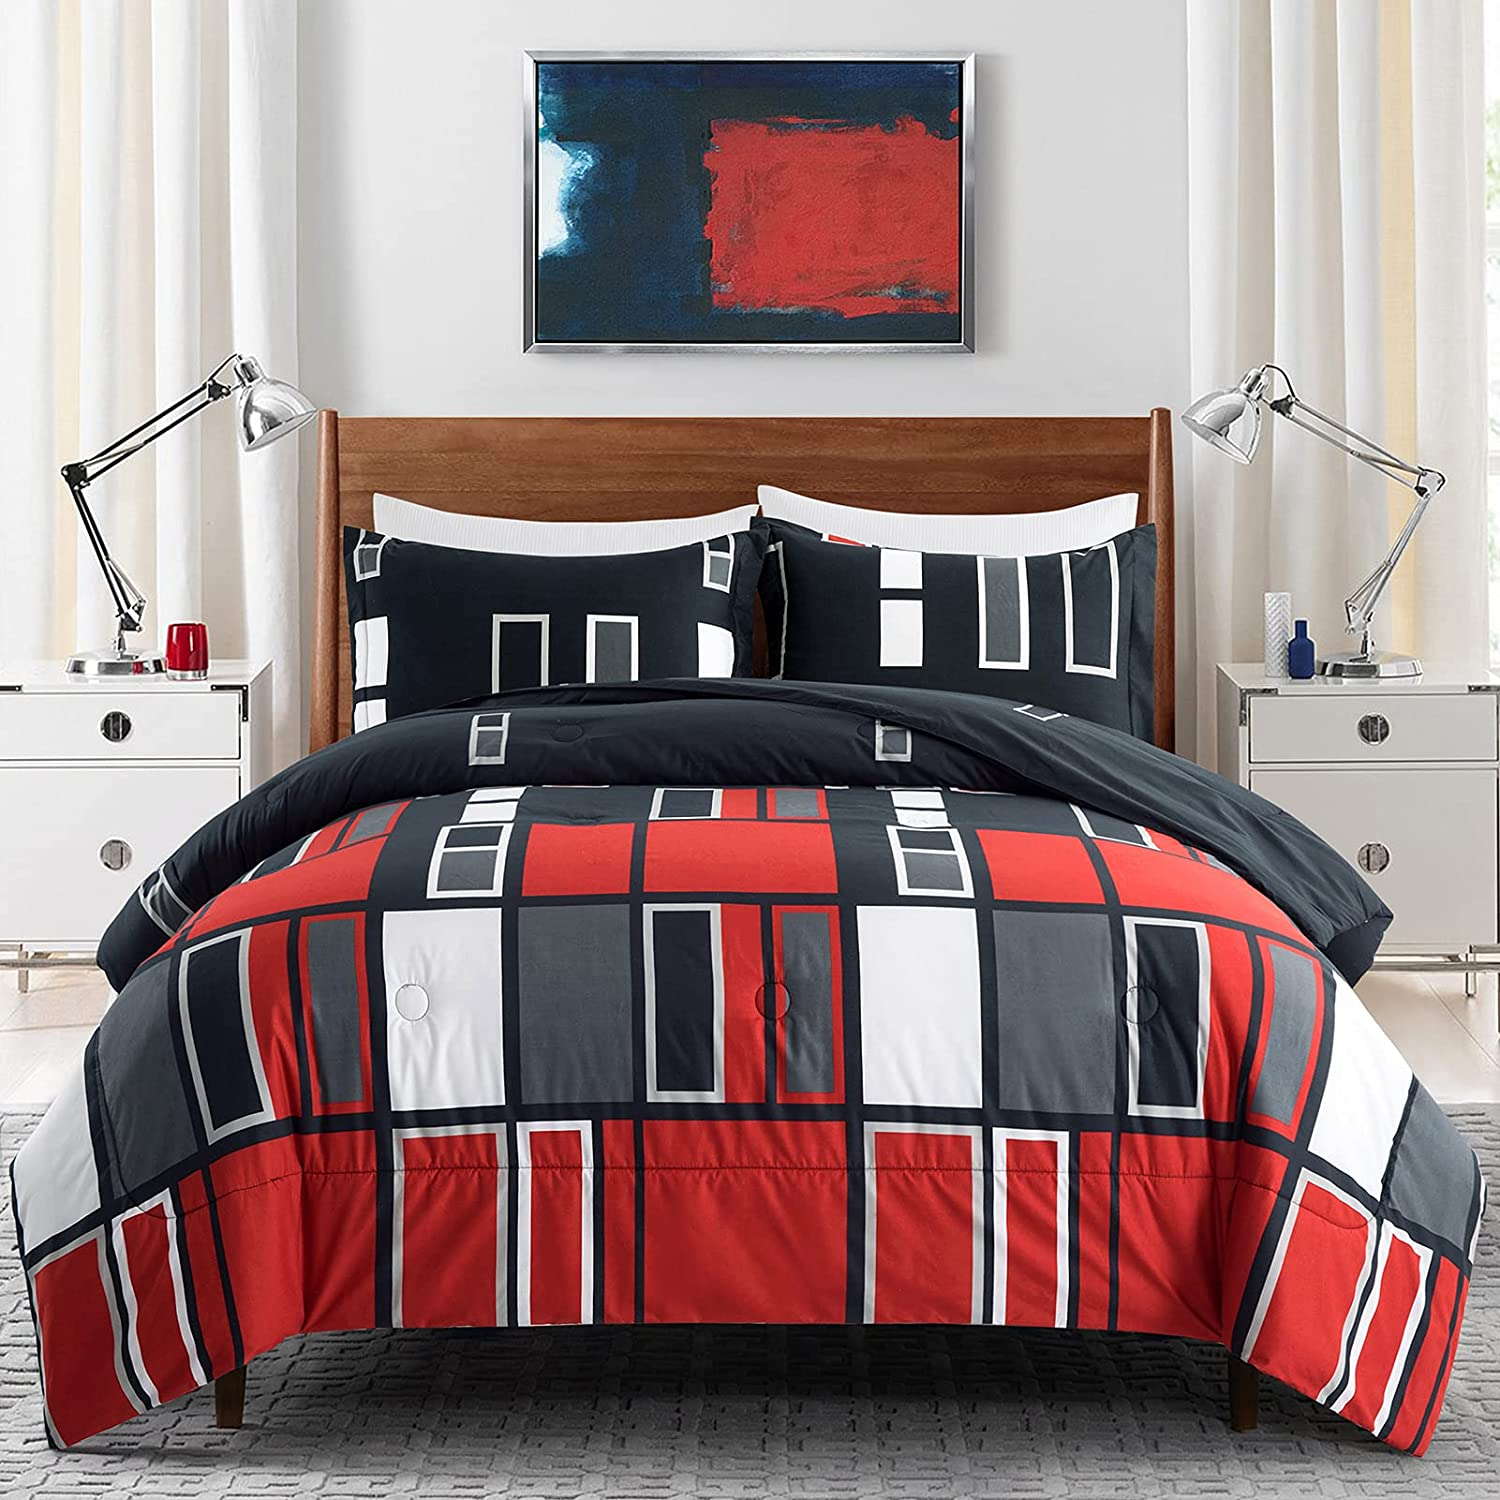 ARTALL Microfiber 2 Pieces Comforter New product! New type Set Pa 4 years warranty Black Red Plaid Gray